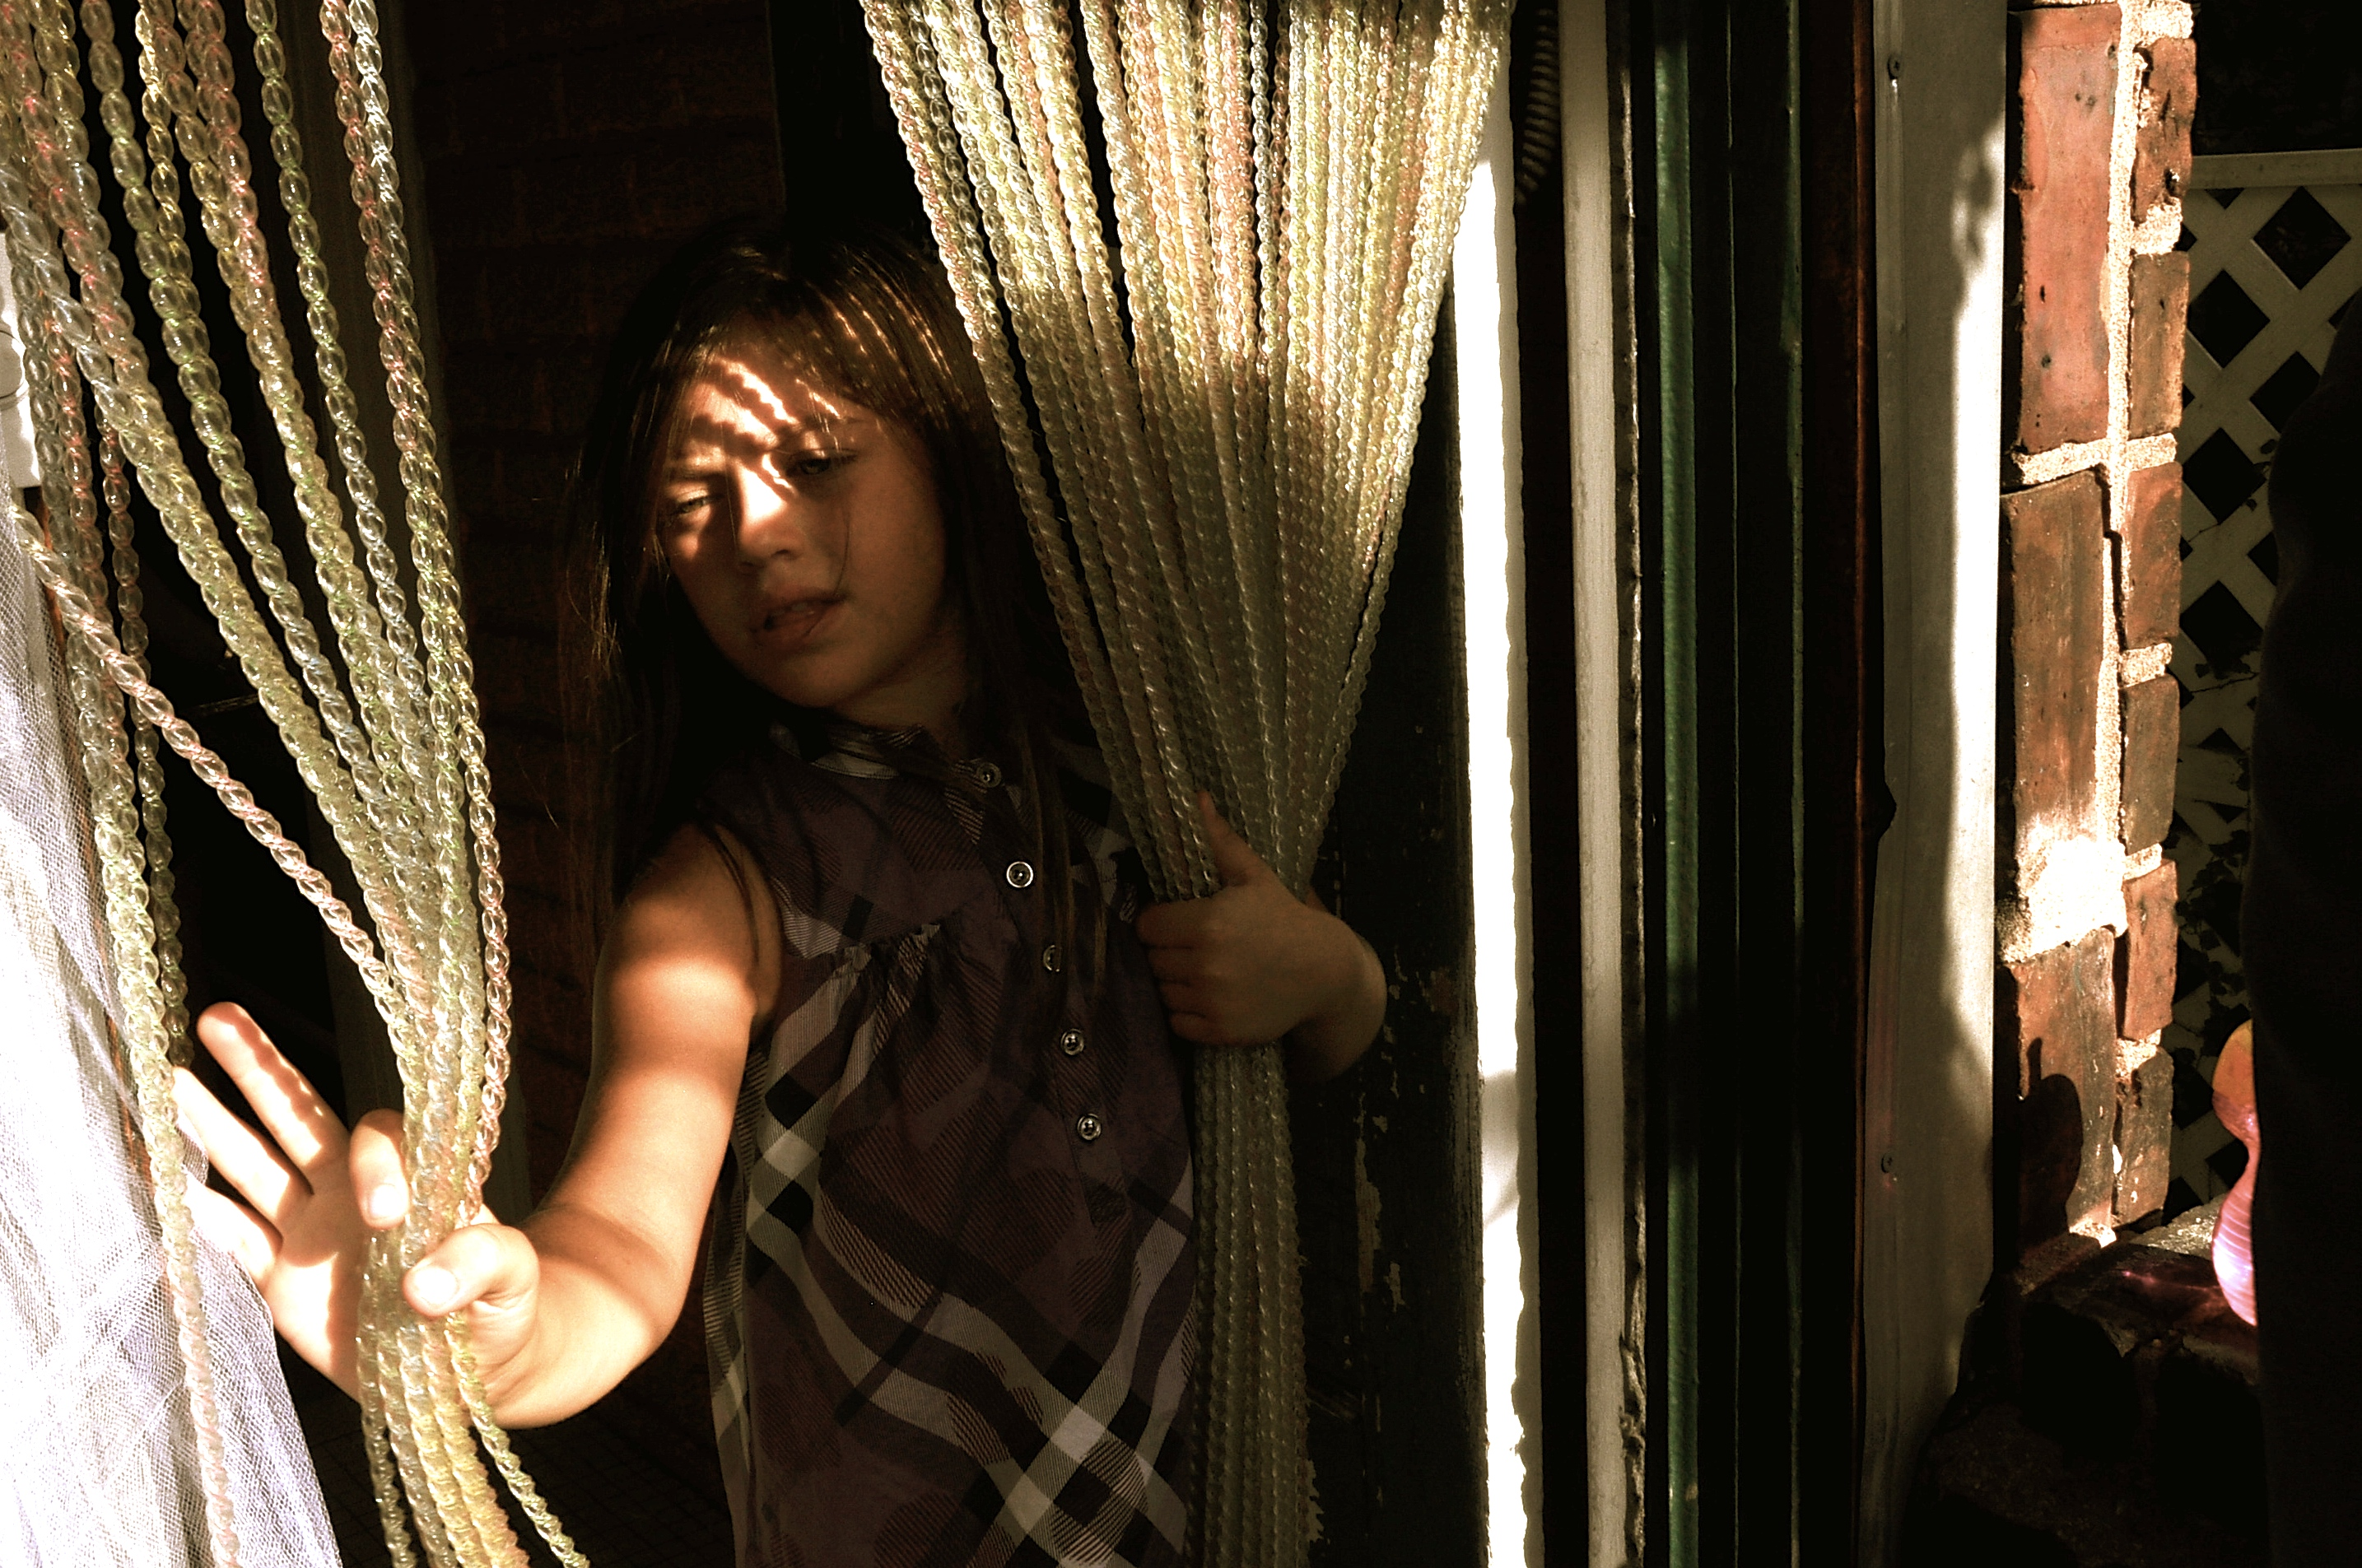 Girls on curtain